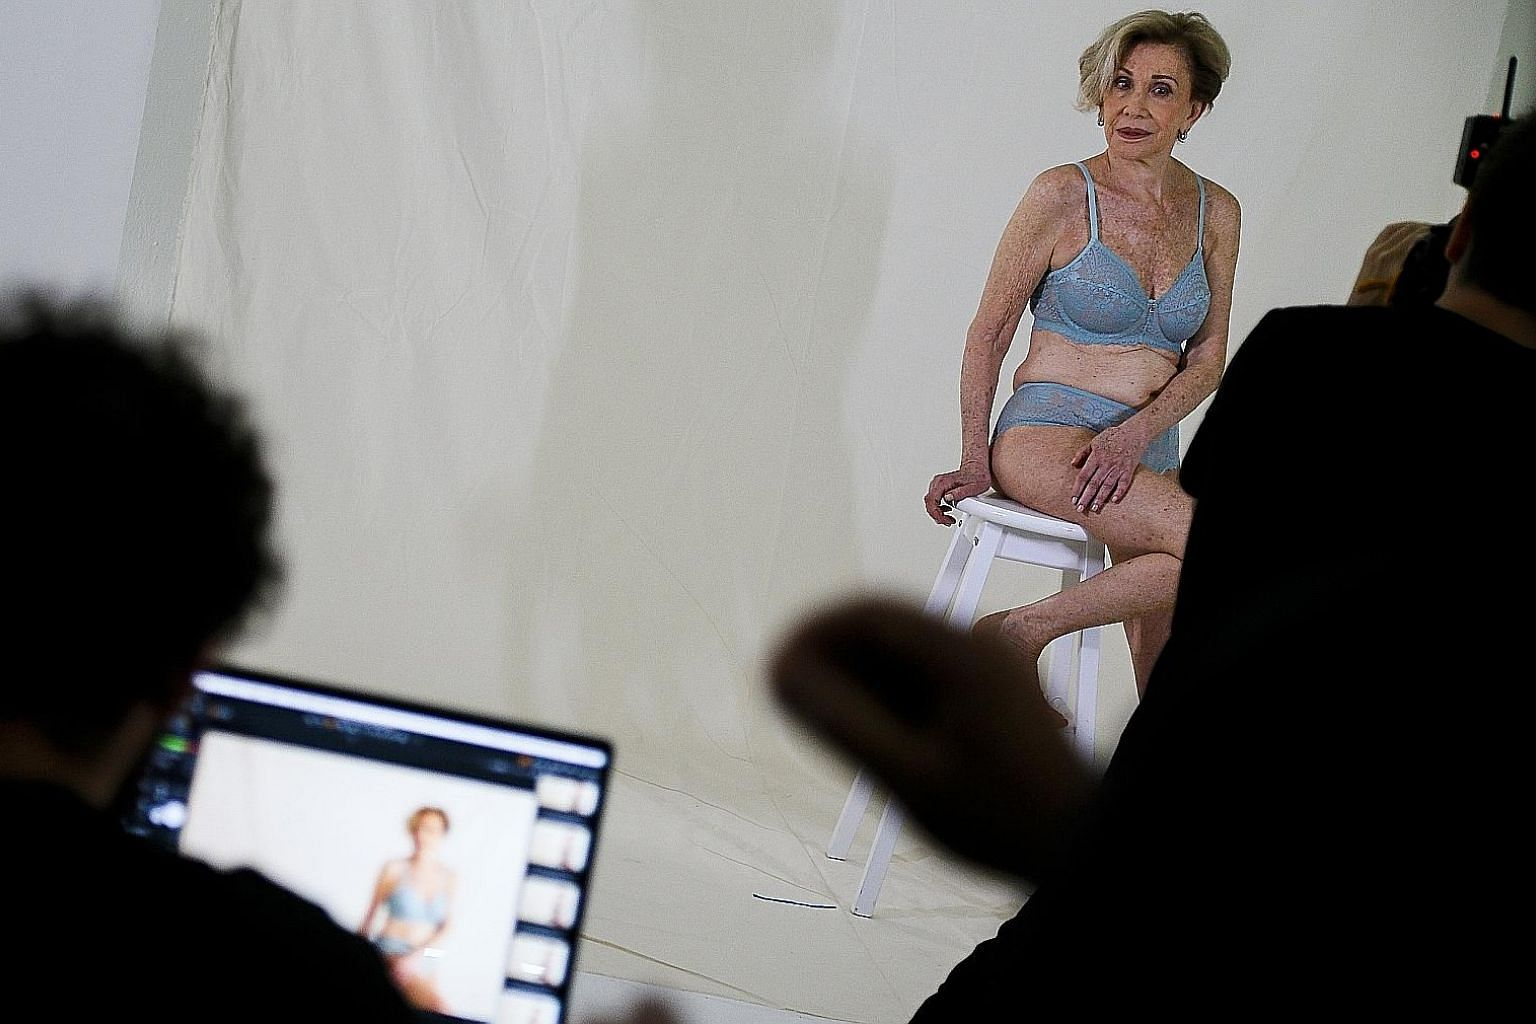 Brazilian grandmother Helena Schargel, 79, has launched several underwear collections with Recco Lingerie, modelling in the garments herself.